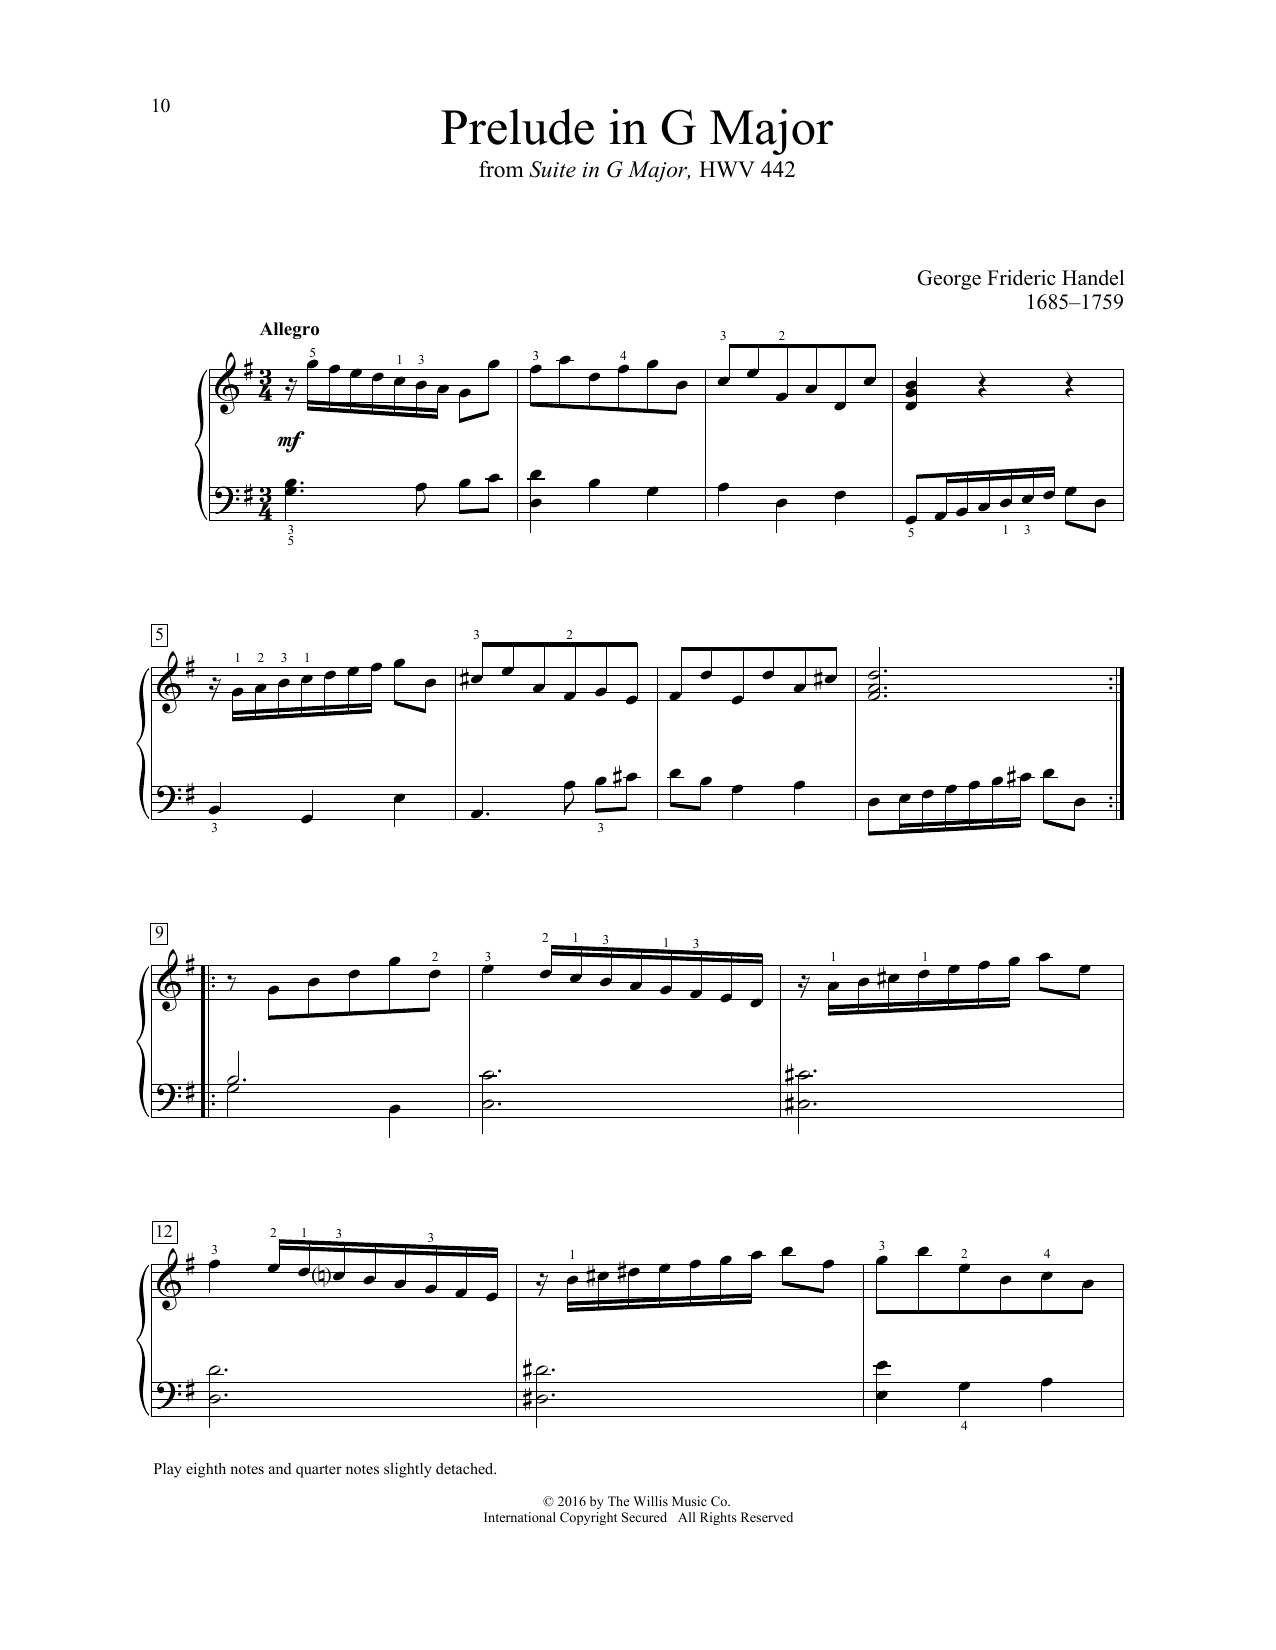 George Frideric Handel Prelude In G Major sheet music notes and chords. Download Printable PDF.